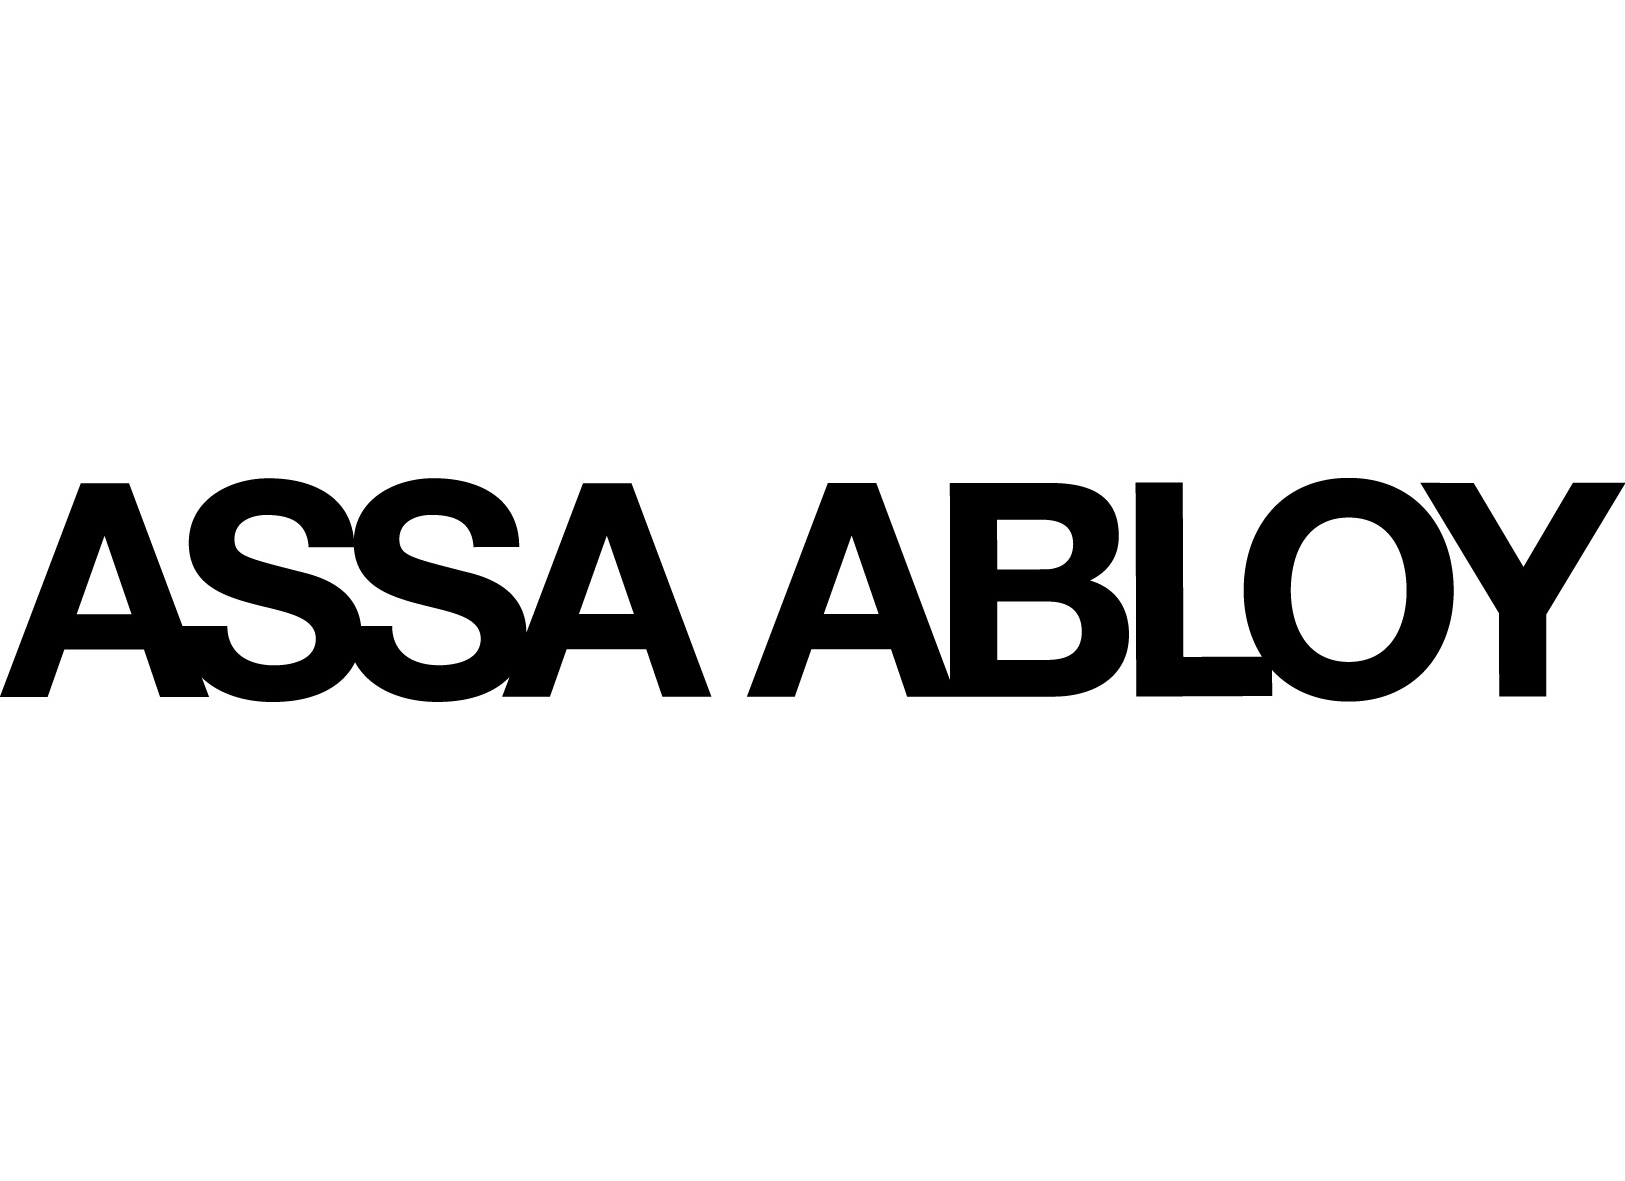 ASSAABLOY_black_cmyk.jpg